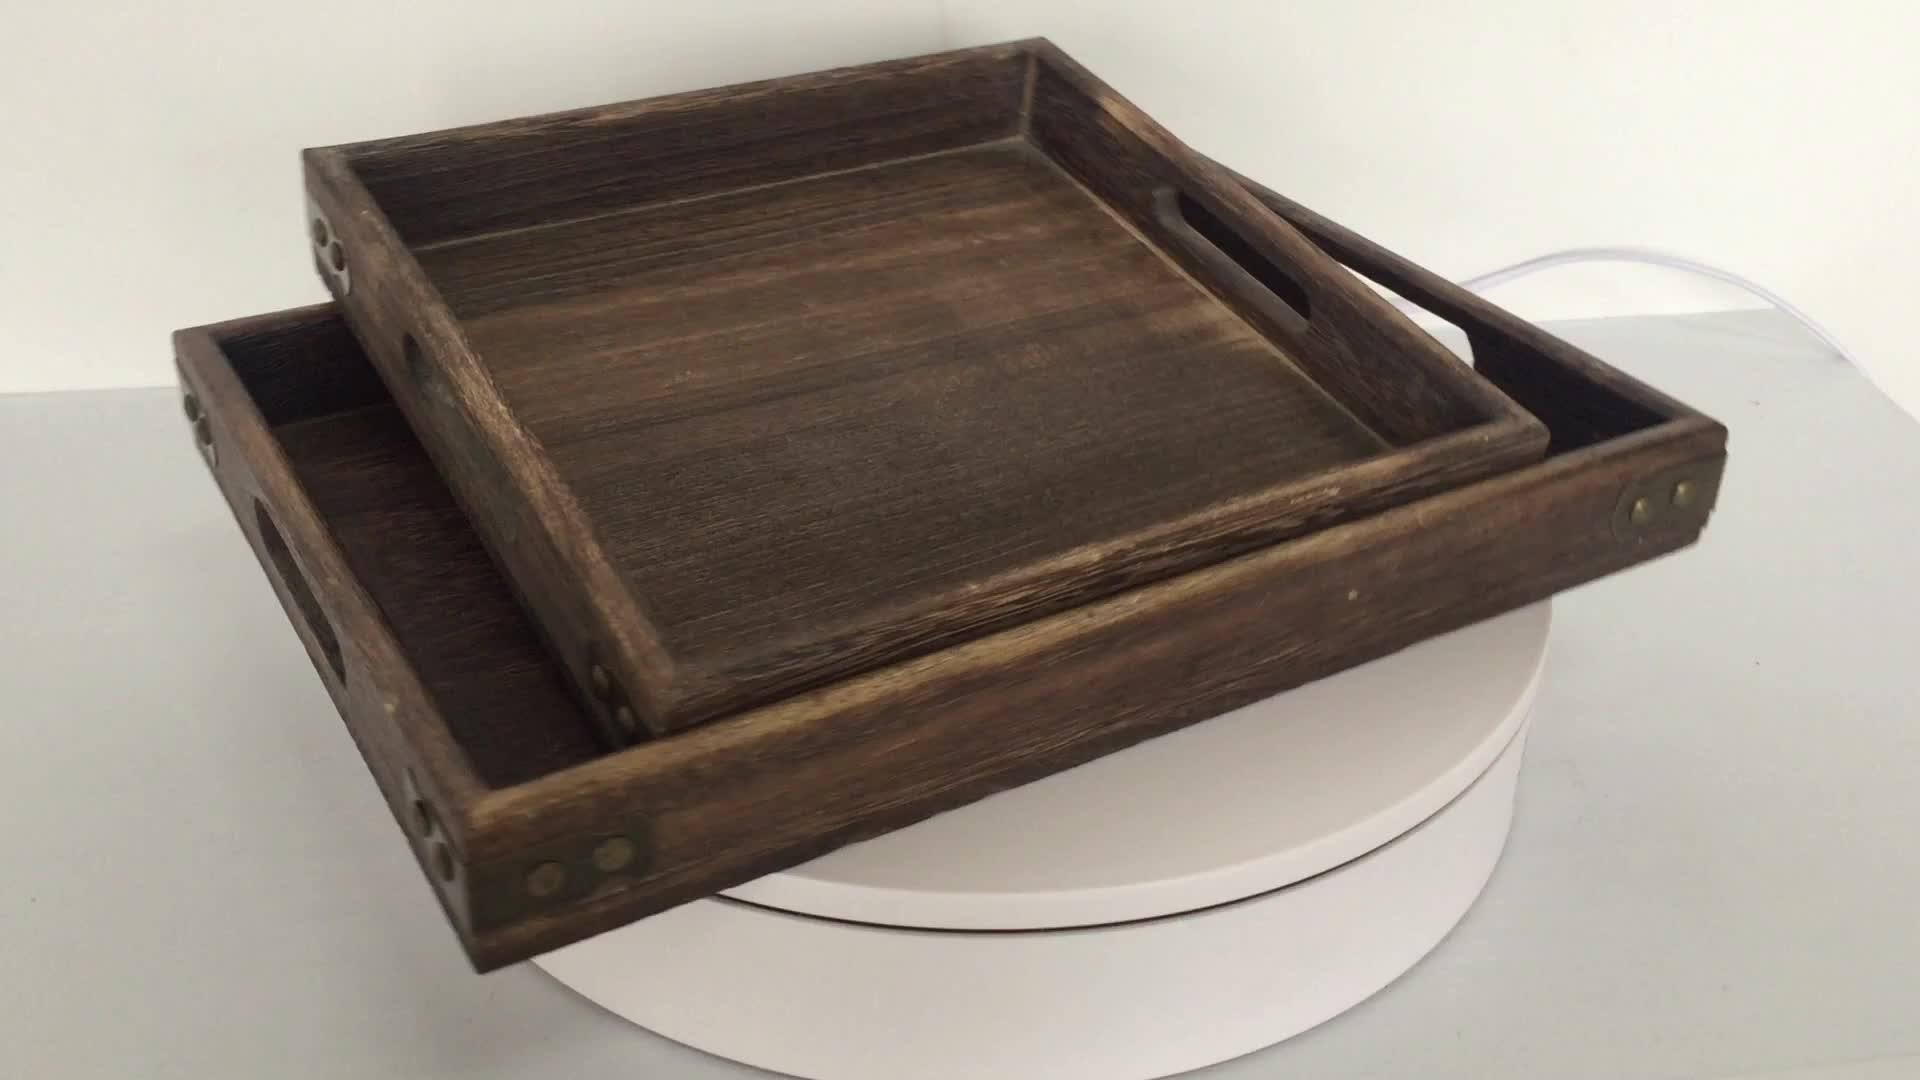 Decorative Soft Modern Style wood Tray with Polished Gold Metal Handles